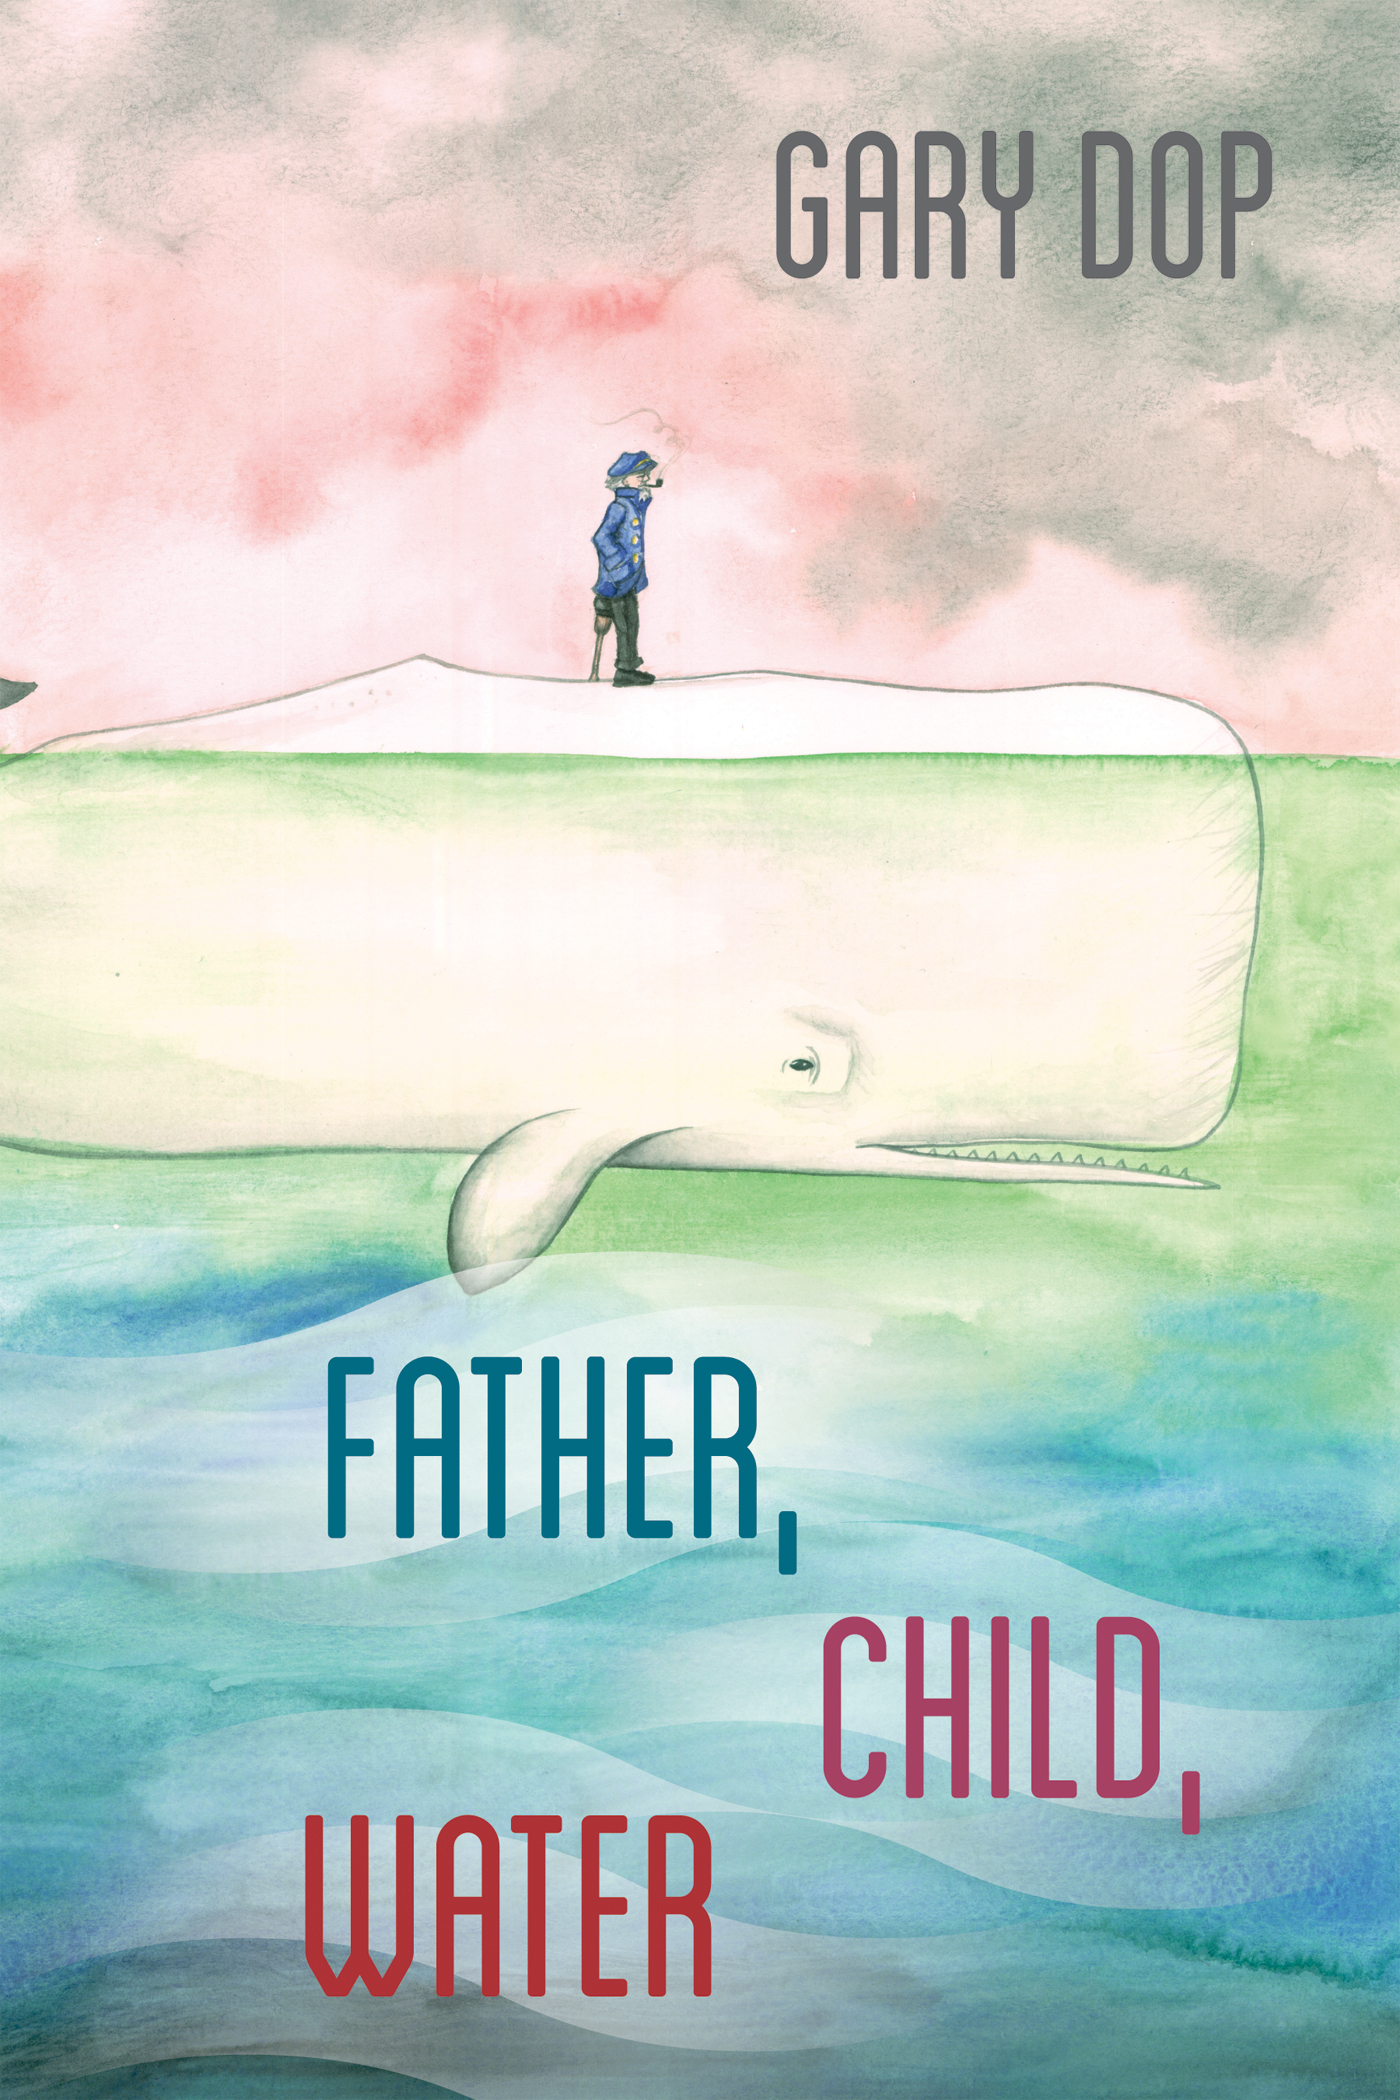 """A drawing of a white whale halfway in water, a drawing of a man standing on the whale against a pink and gray background, gray text reads """"Gary Dop,"""" blue and red text reads """"Father, Child, Water"""""""